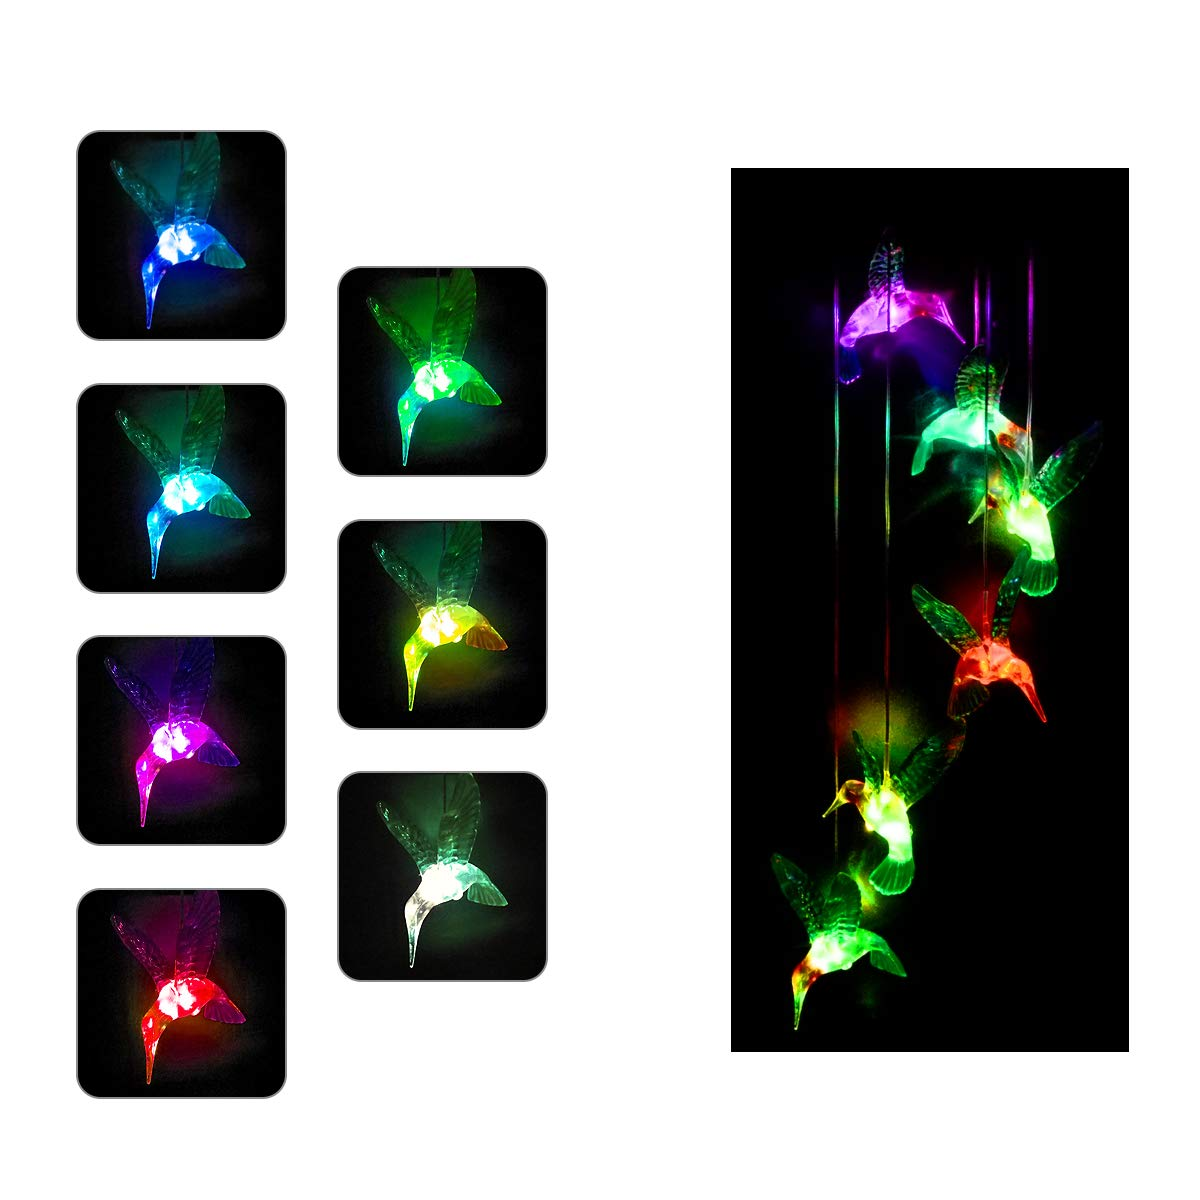 LSHENG Colorful Solar Wind Chimes Outdoor - Color Changing Solar Powered Hummingbird Wind Chimes Indoor Outdoor Led Hanging Lamp Night Lights for for Home,Party,Patio, Night,Yard,Garden,Festival Decor